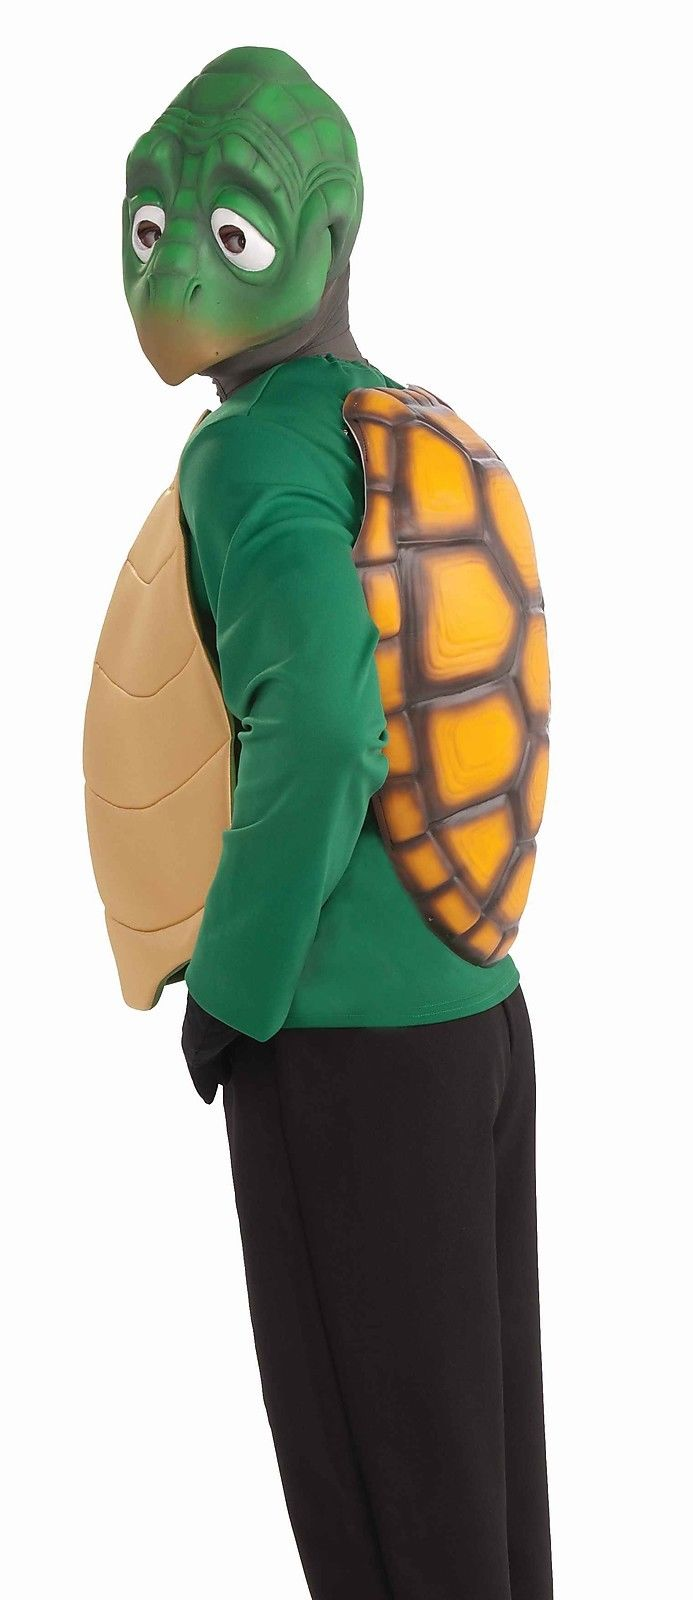 Turtle Tortoise Shell u0026 Mask Adult Humor Unisex Animal Party Halloween Costume  sc 1 st  eBay & Turtle Tortoise Shell u0026 Mask Adult Humor Unisex Animal Party ...